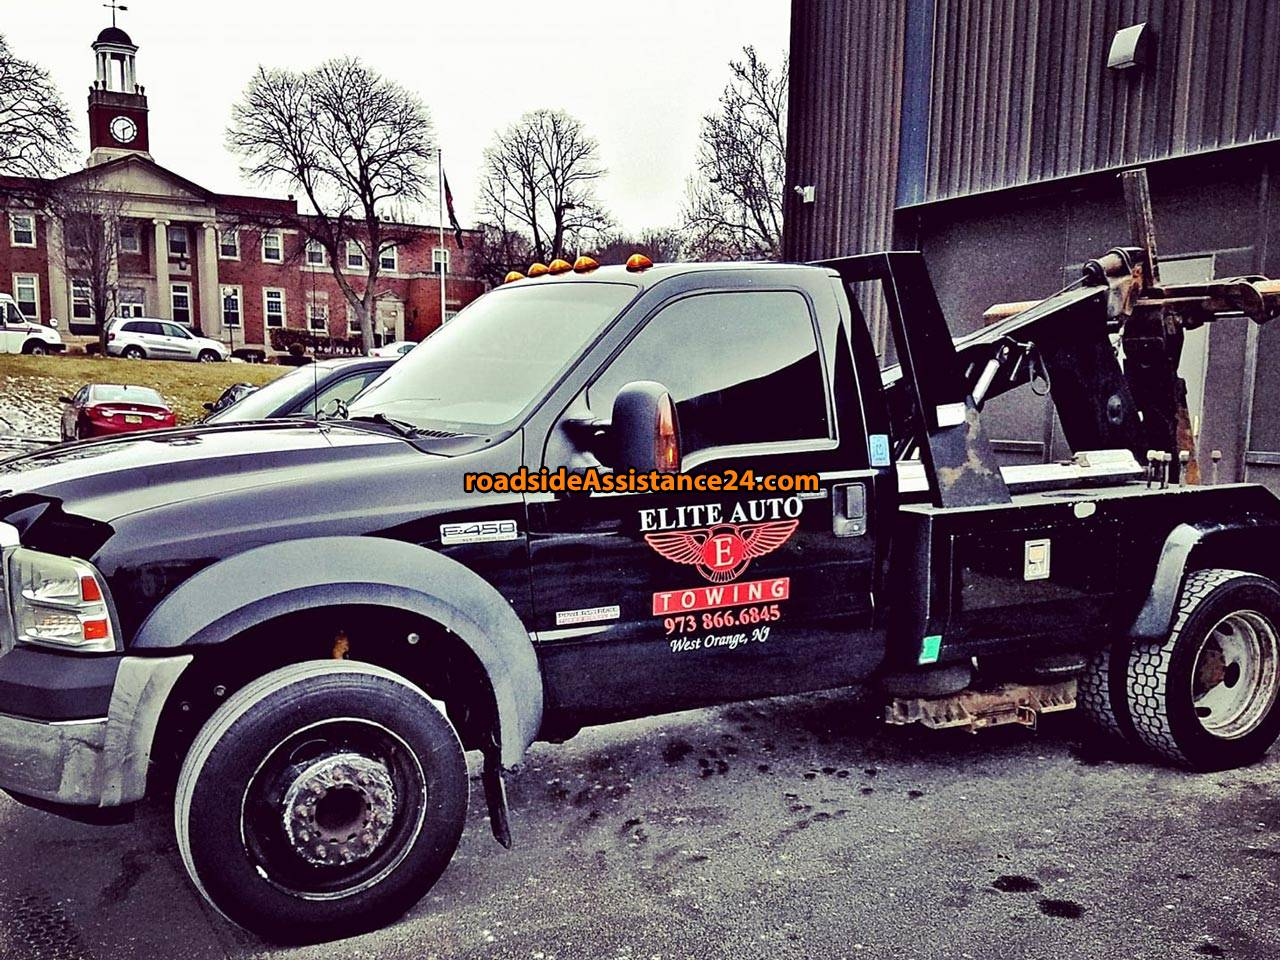 Elite Auto Towing